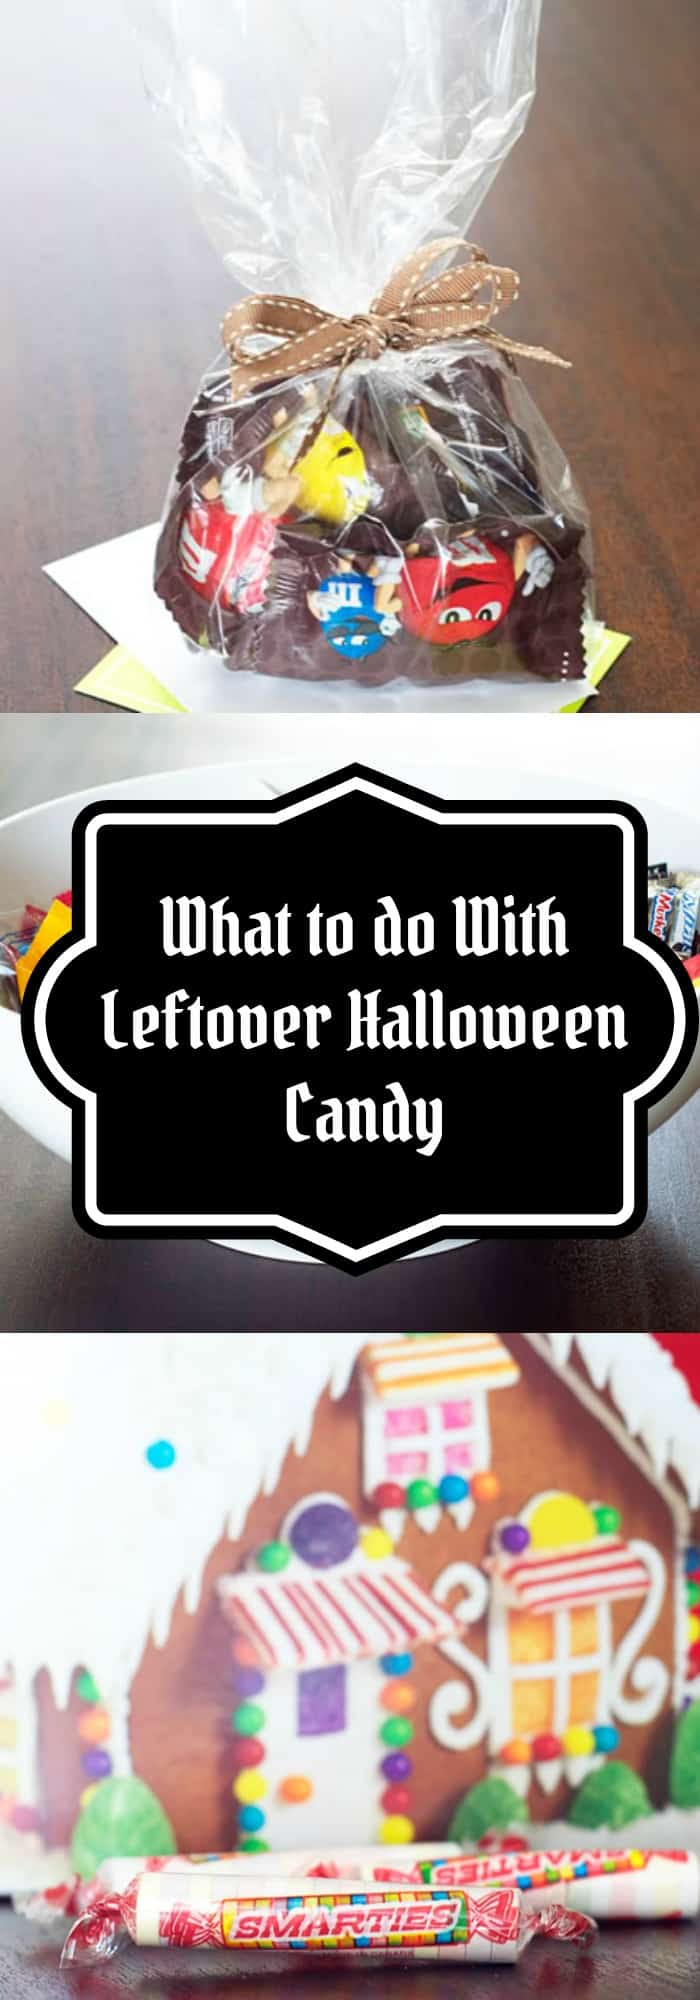 Halloween-What to do With Leftover Halloween Candy-The Organized Mom